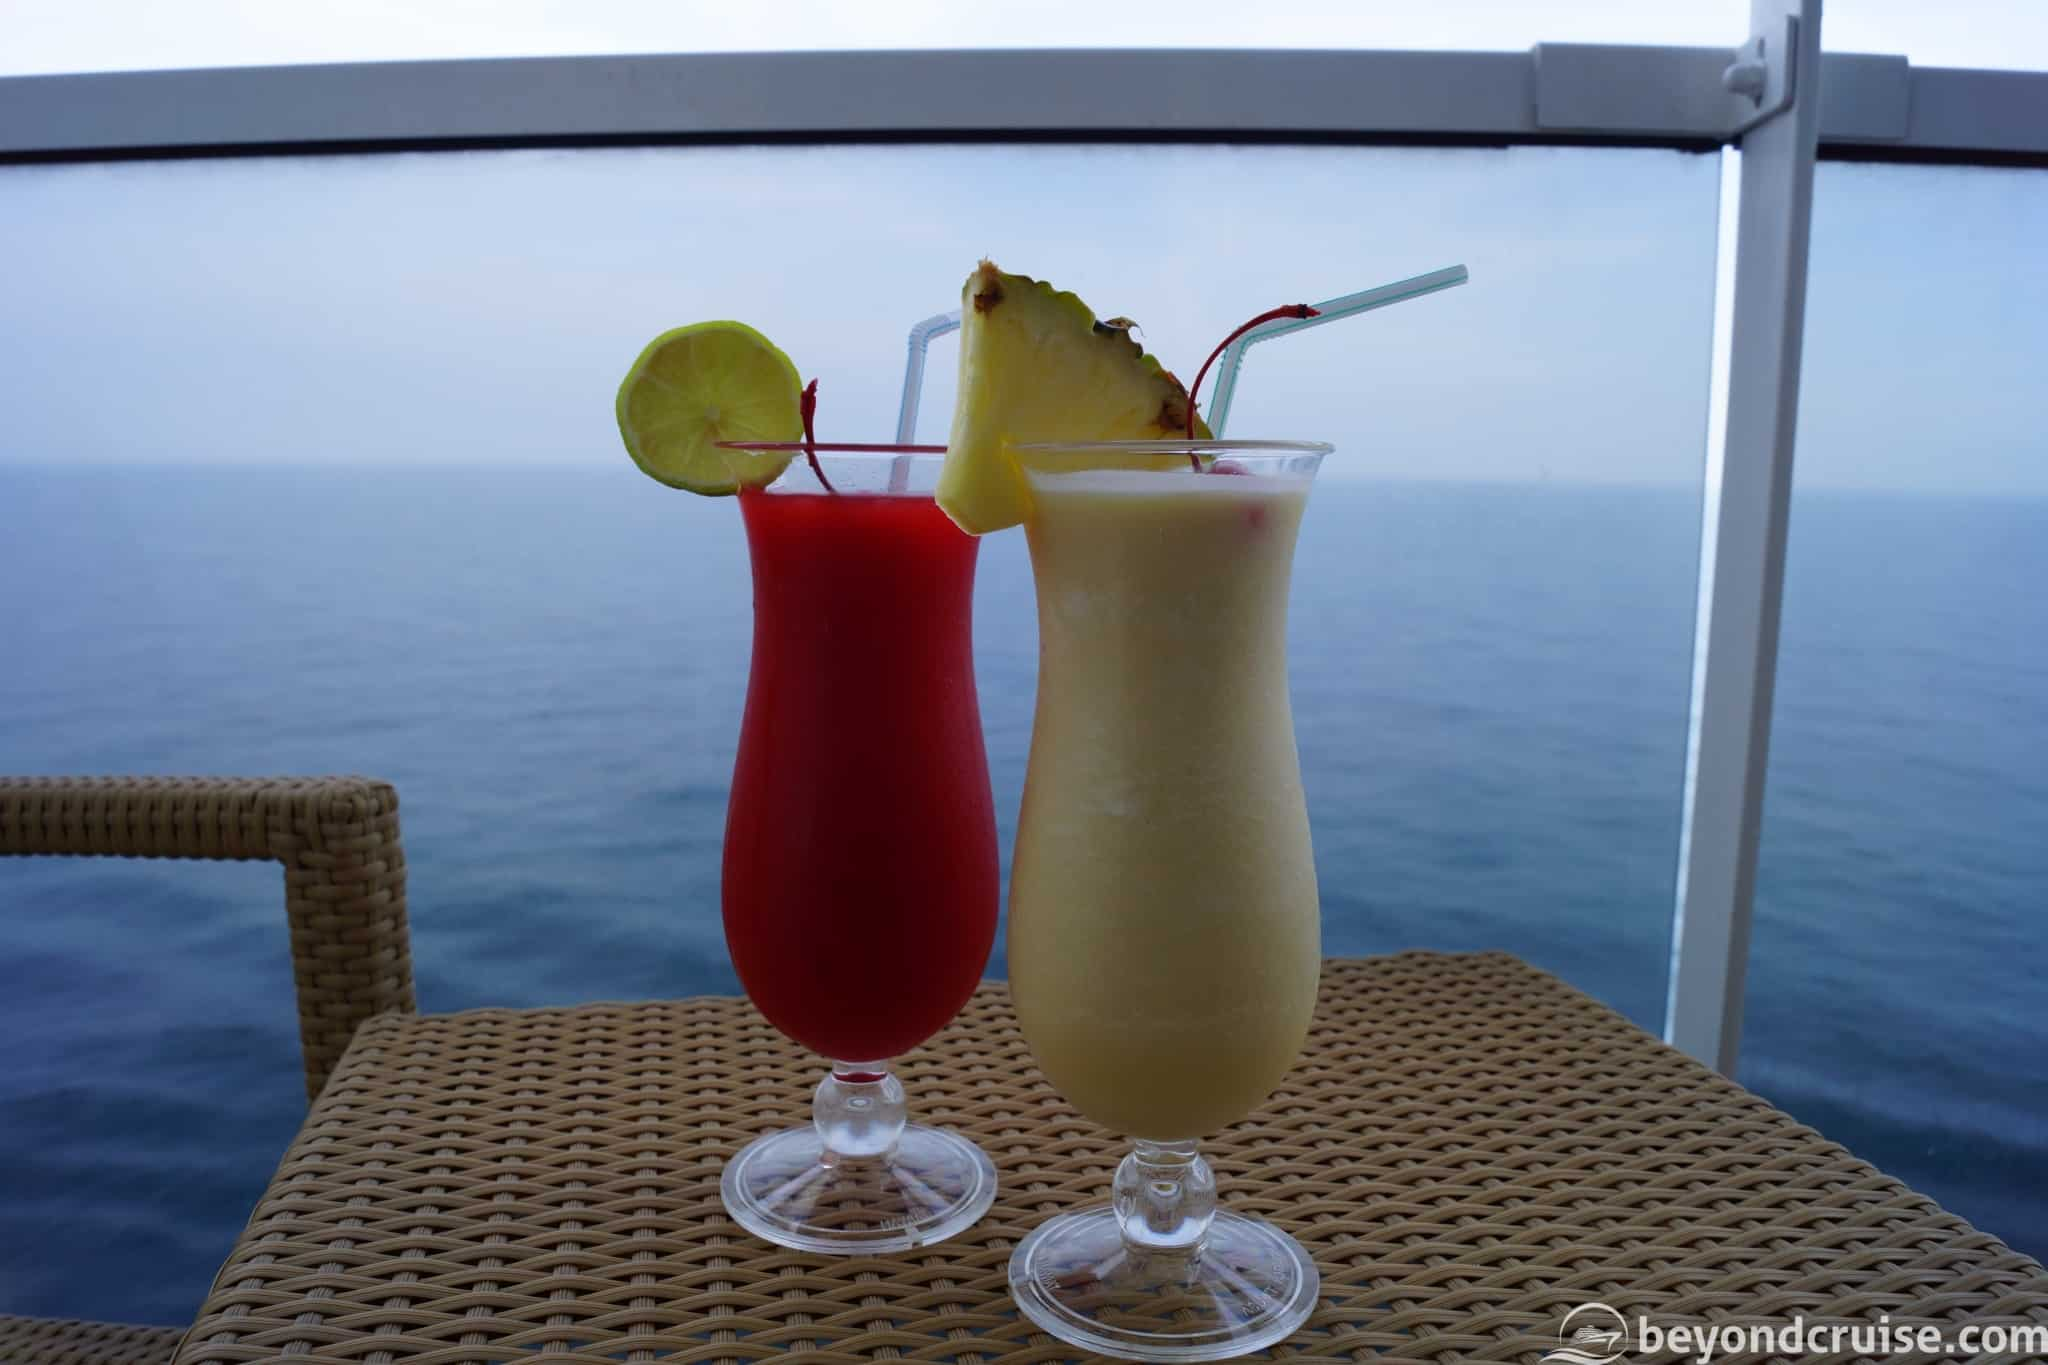 MSC Magnifica Cocktails on the balcony